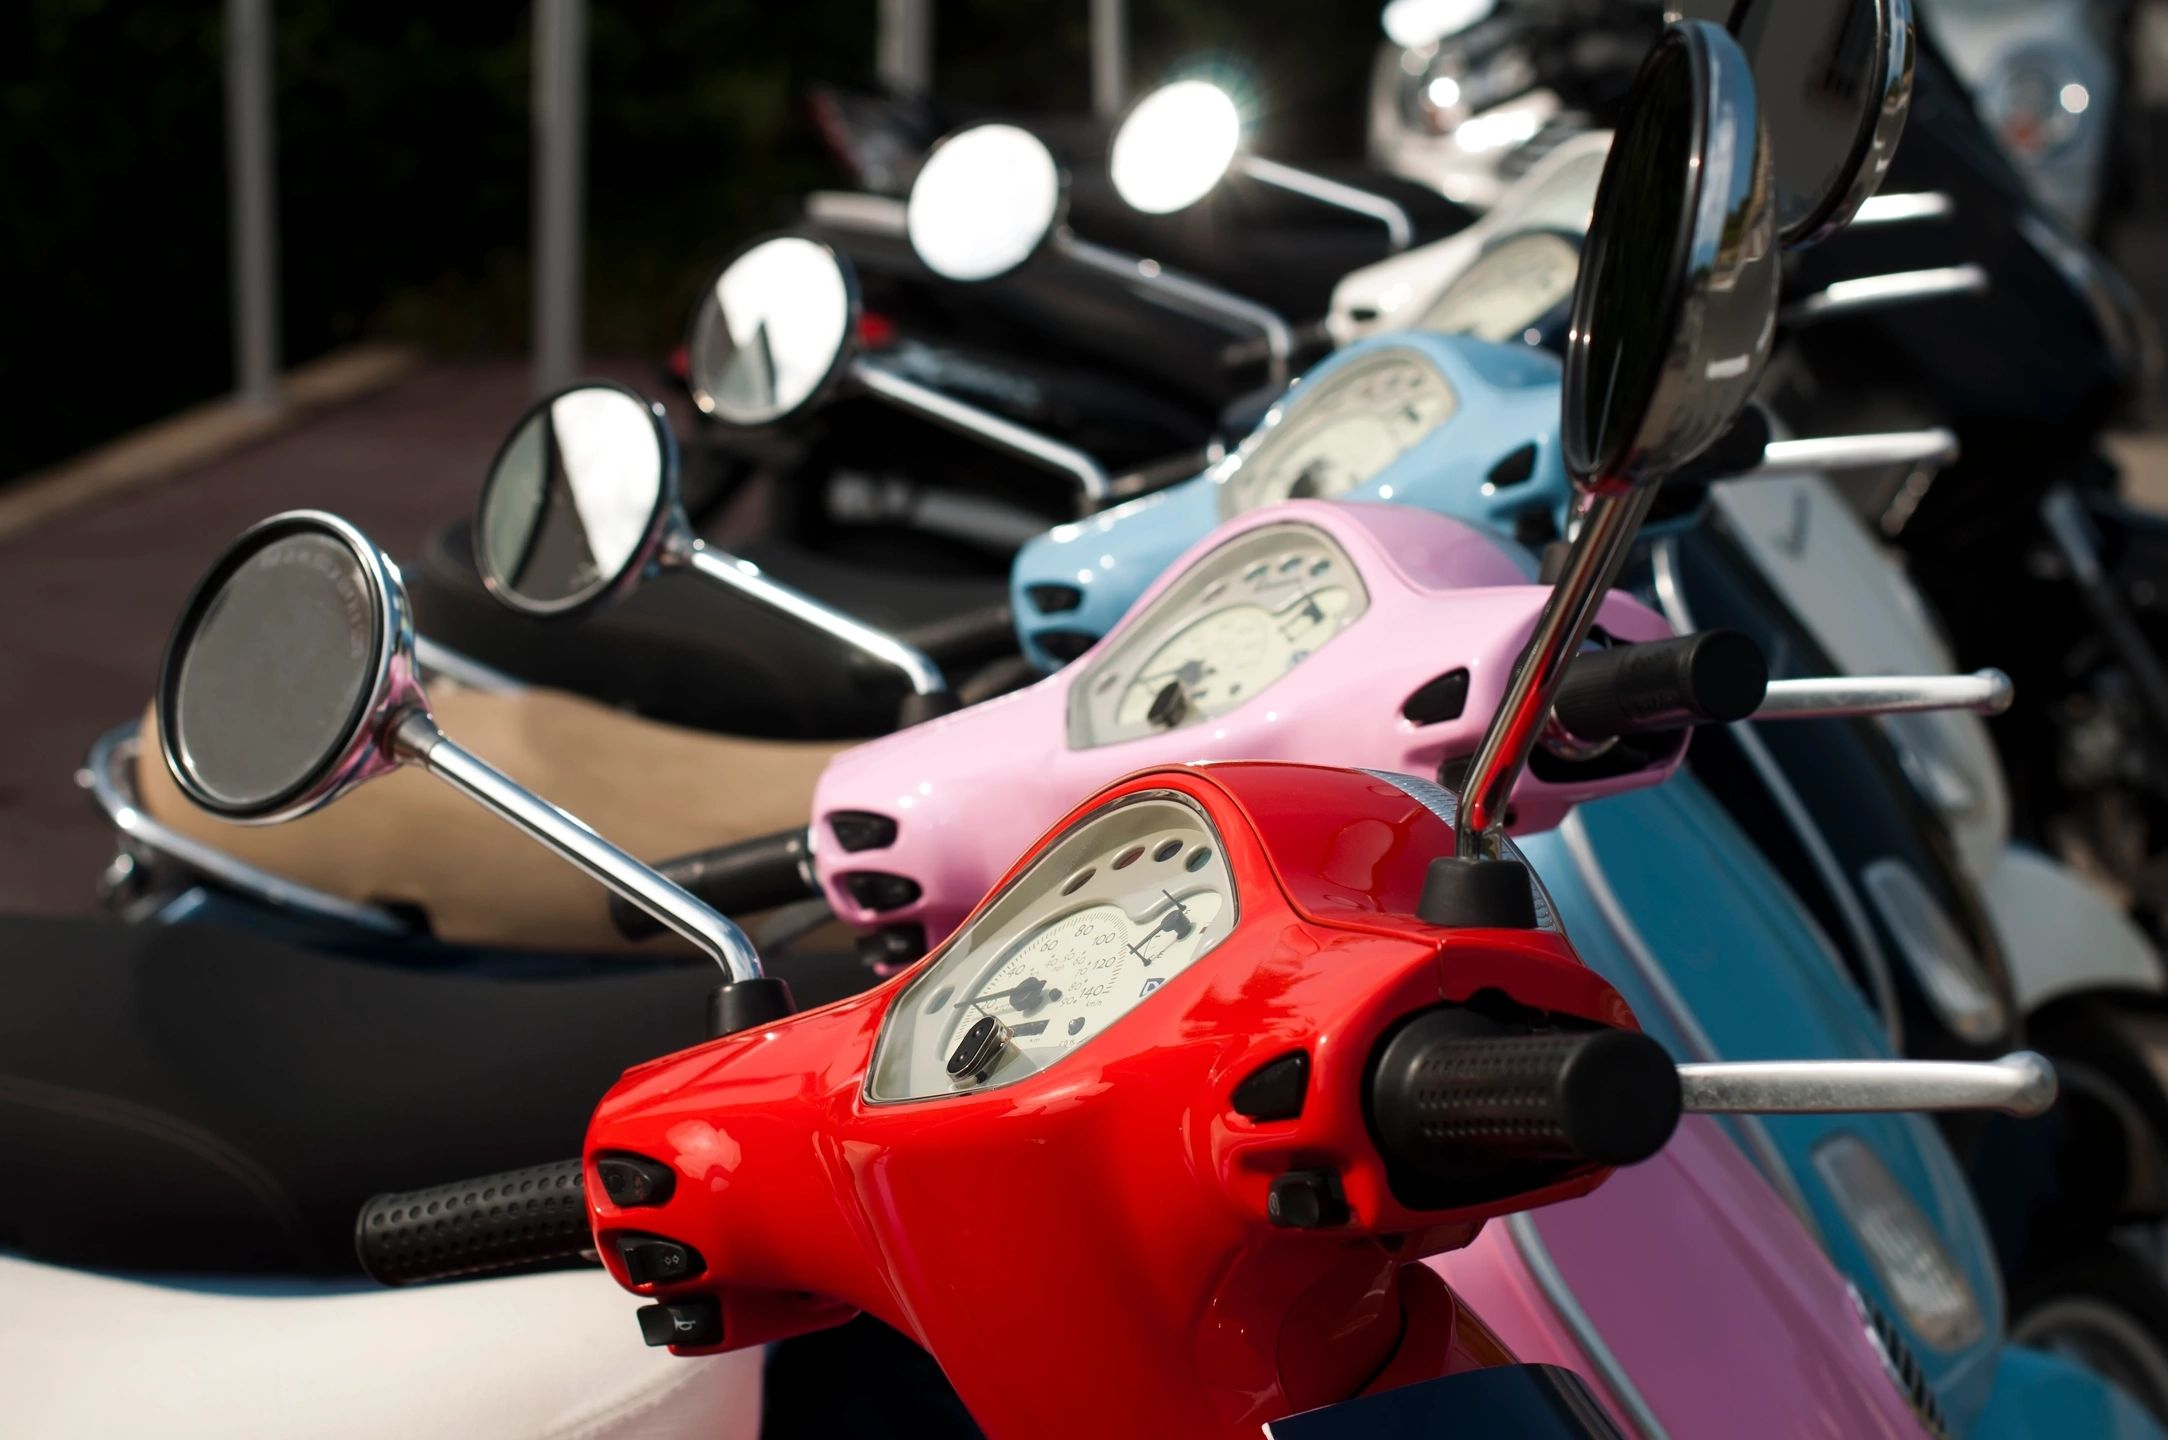 small business moped rental